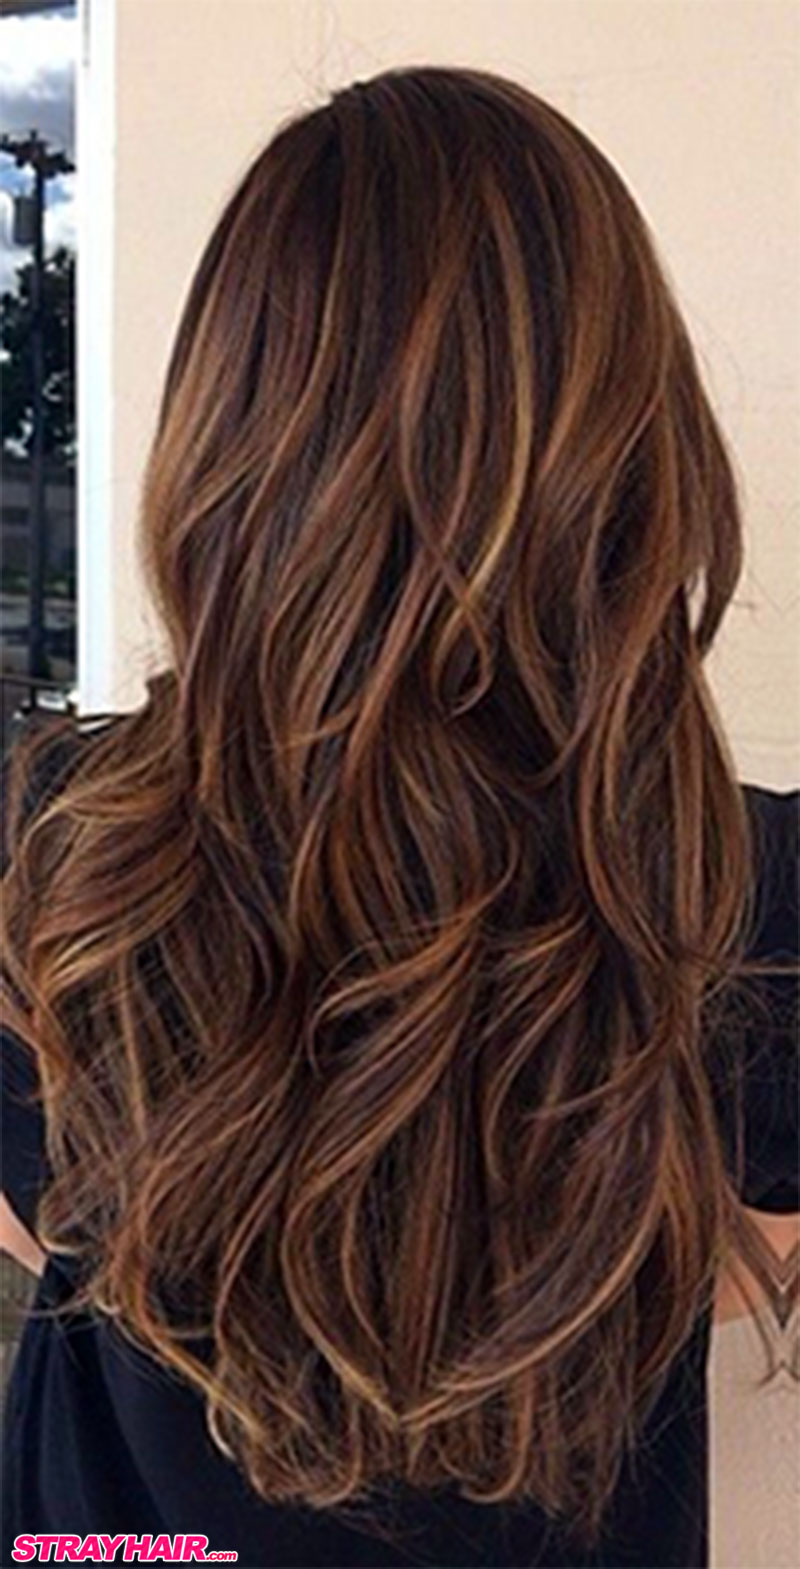 Beautiful chocolate and caramel balayage hair strayhair chocolate brown hair color with dimensional caramel highlights pmusecretfo Choice Image